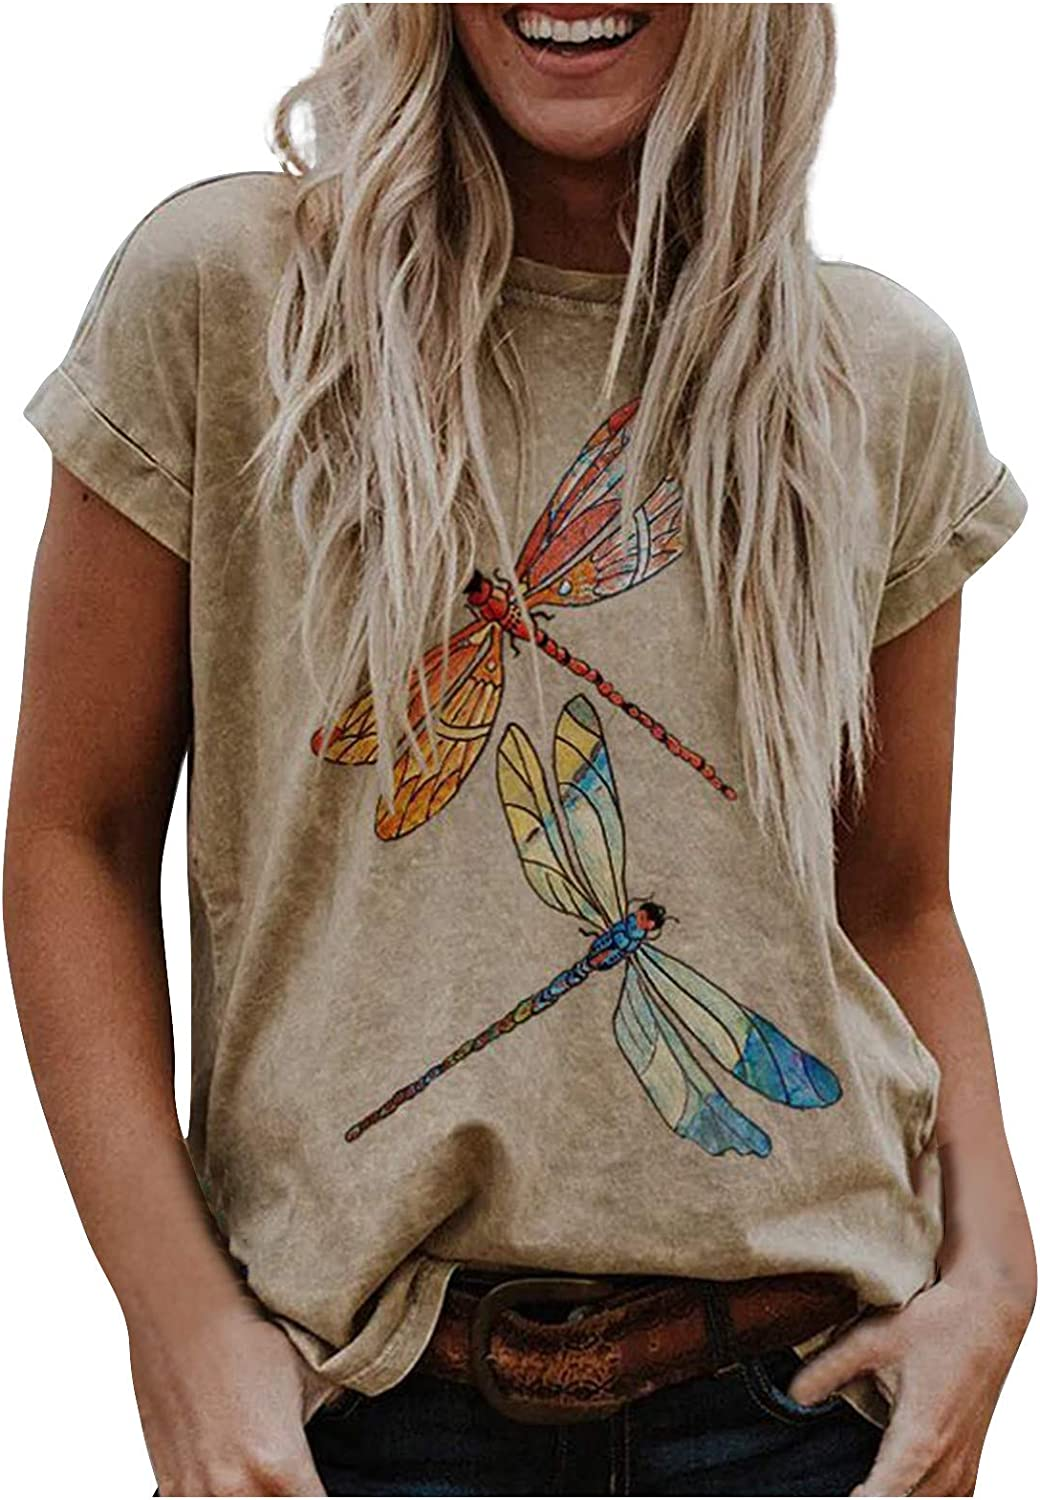 40th/50th Birthday Gifts T Shirts for Women Retro Birthday Graphic Tees Shirt Vintage 1981/1971 Original Casual Tops